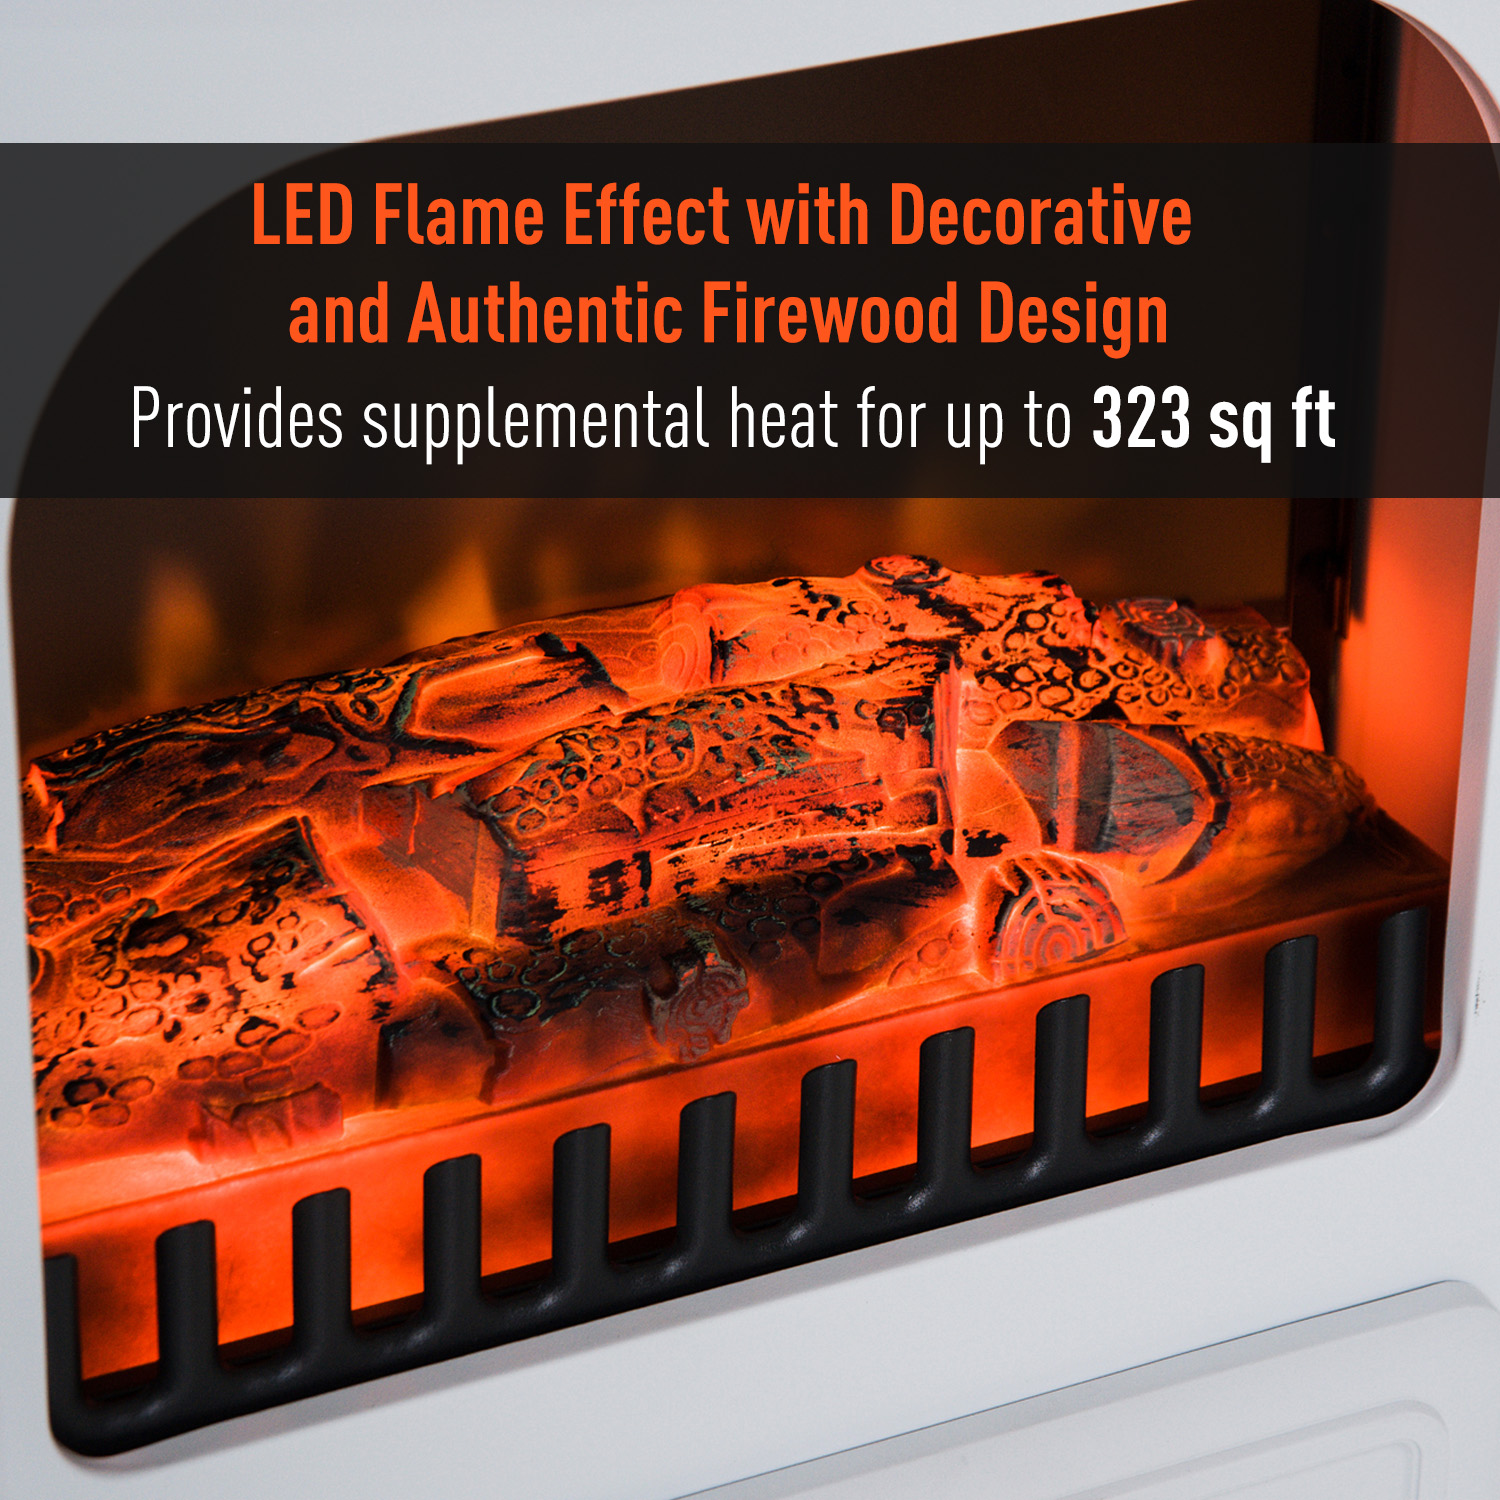 HOMCOM-750-1500W-Portable-Electric-Fireplace-Stove-Heater-Adjustable-LED-Flames thumbnail 20